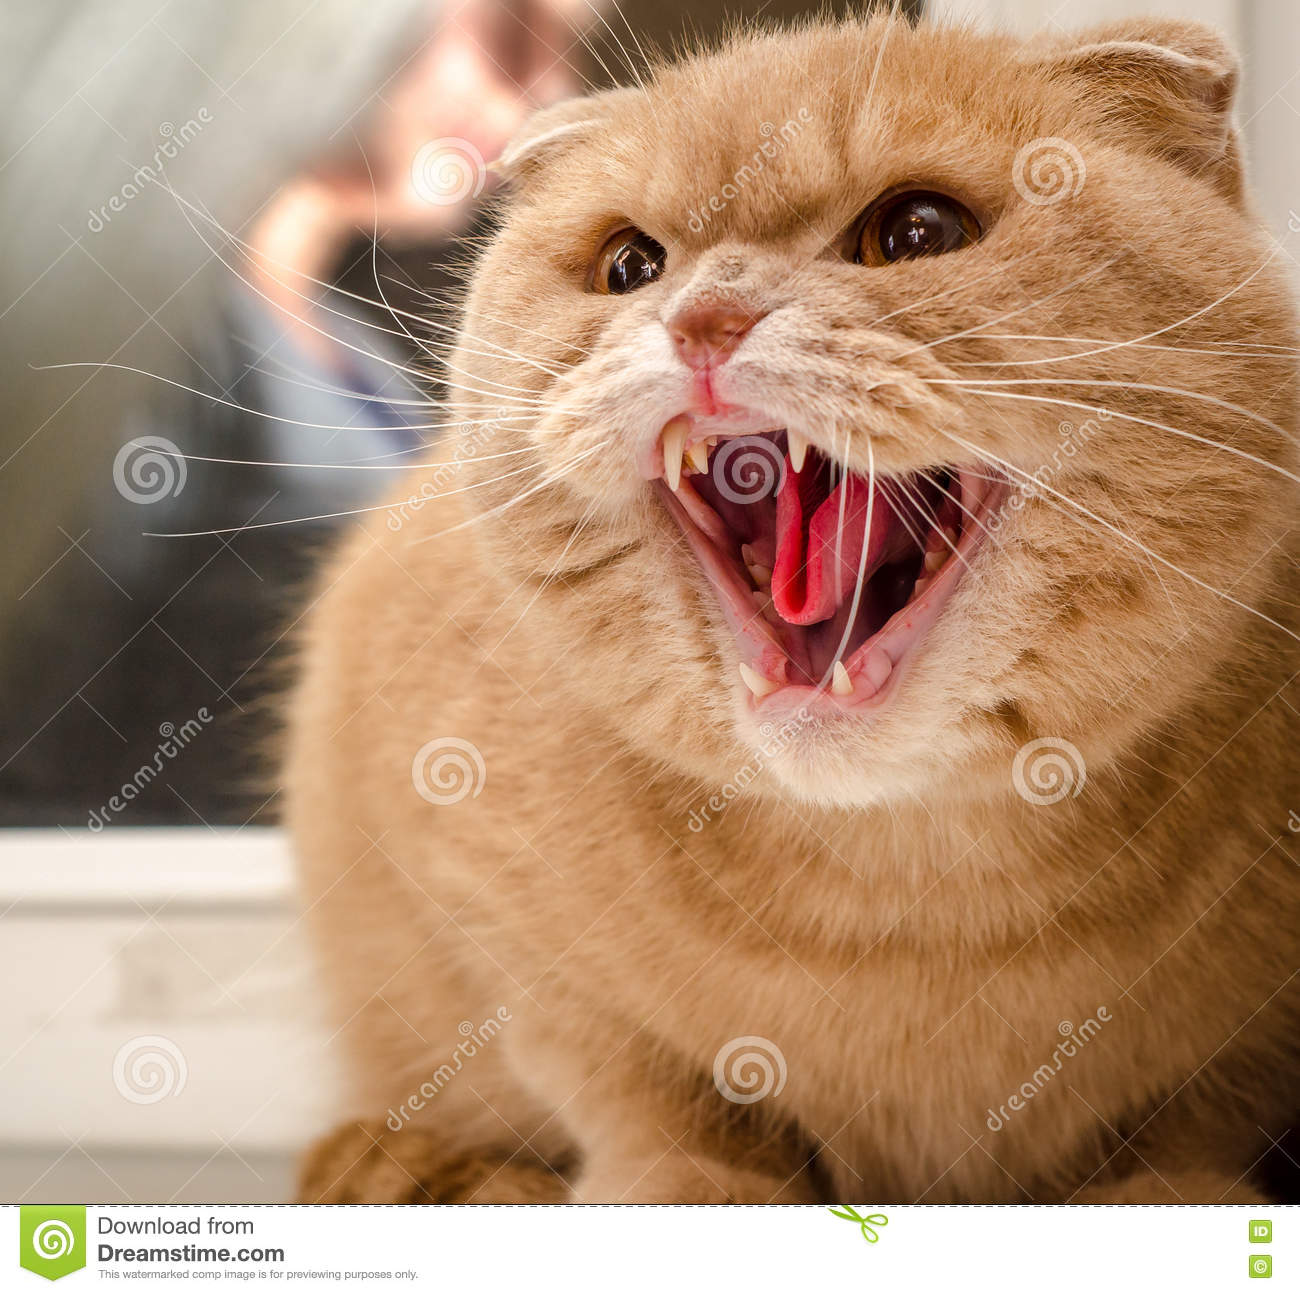 Angry Golden Cat  British Shorthair Cat Stock Photo - Image of